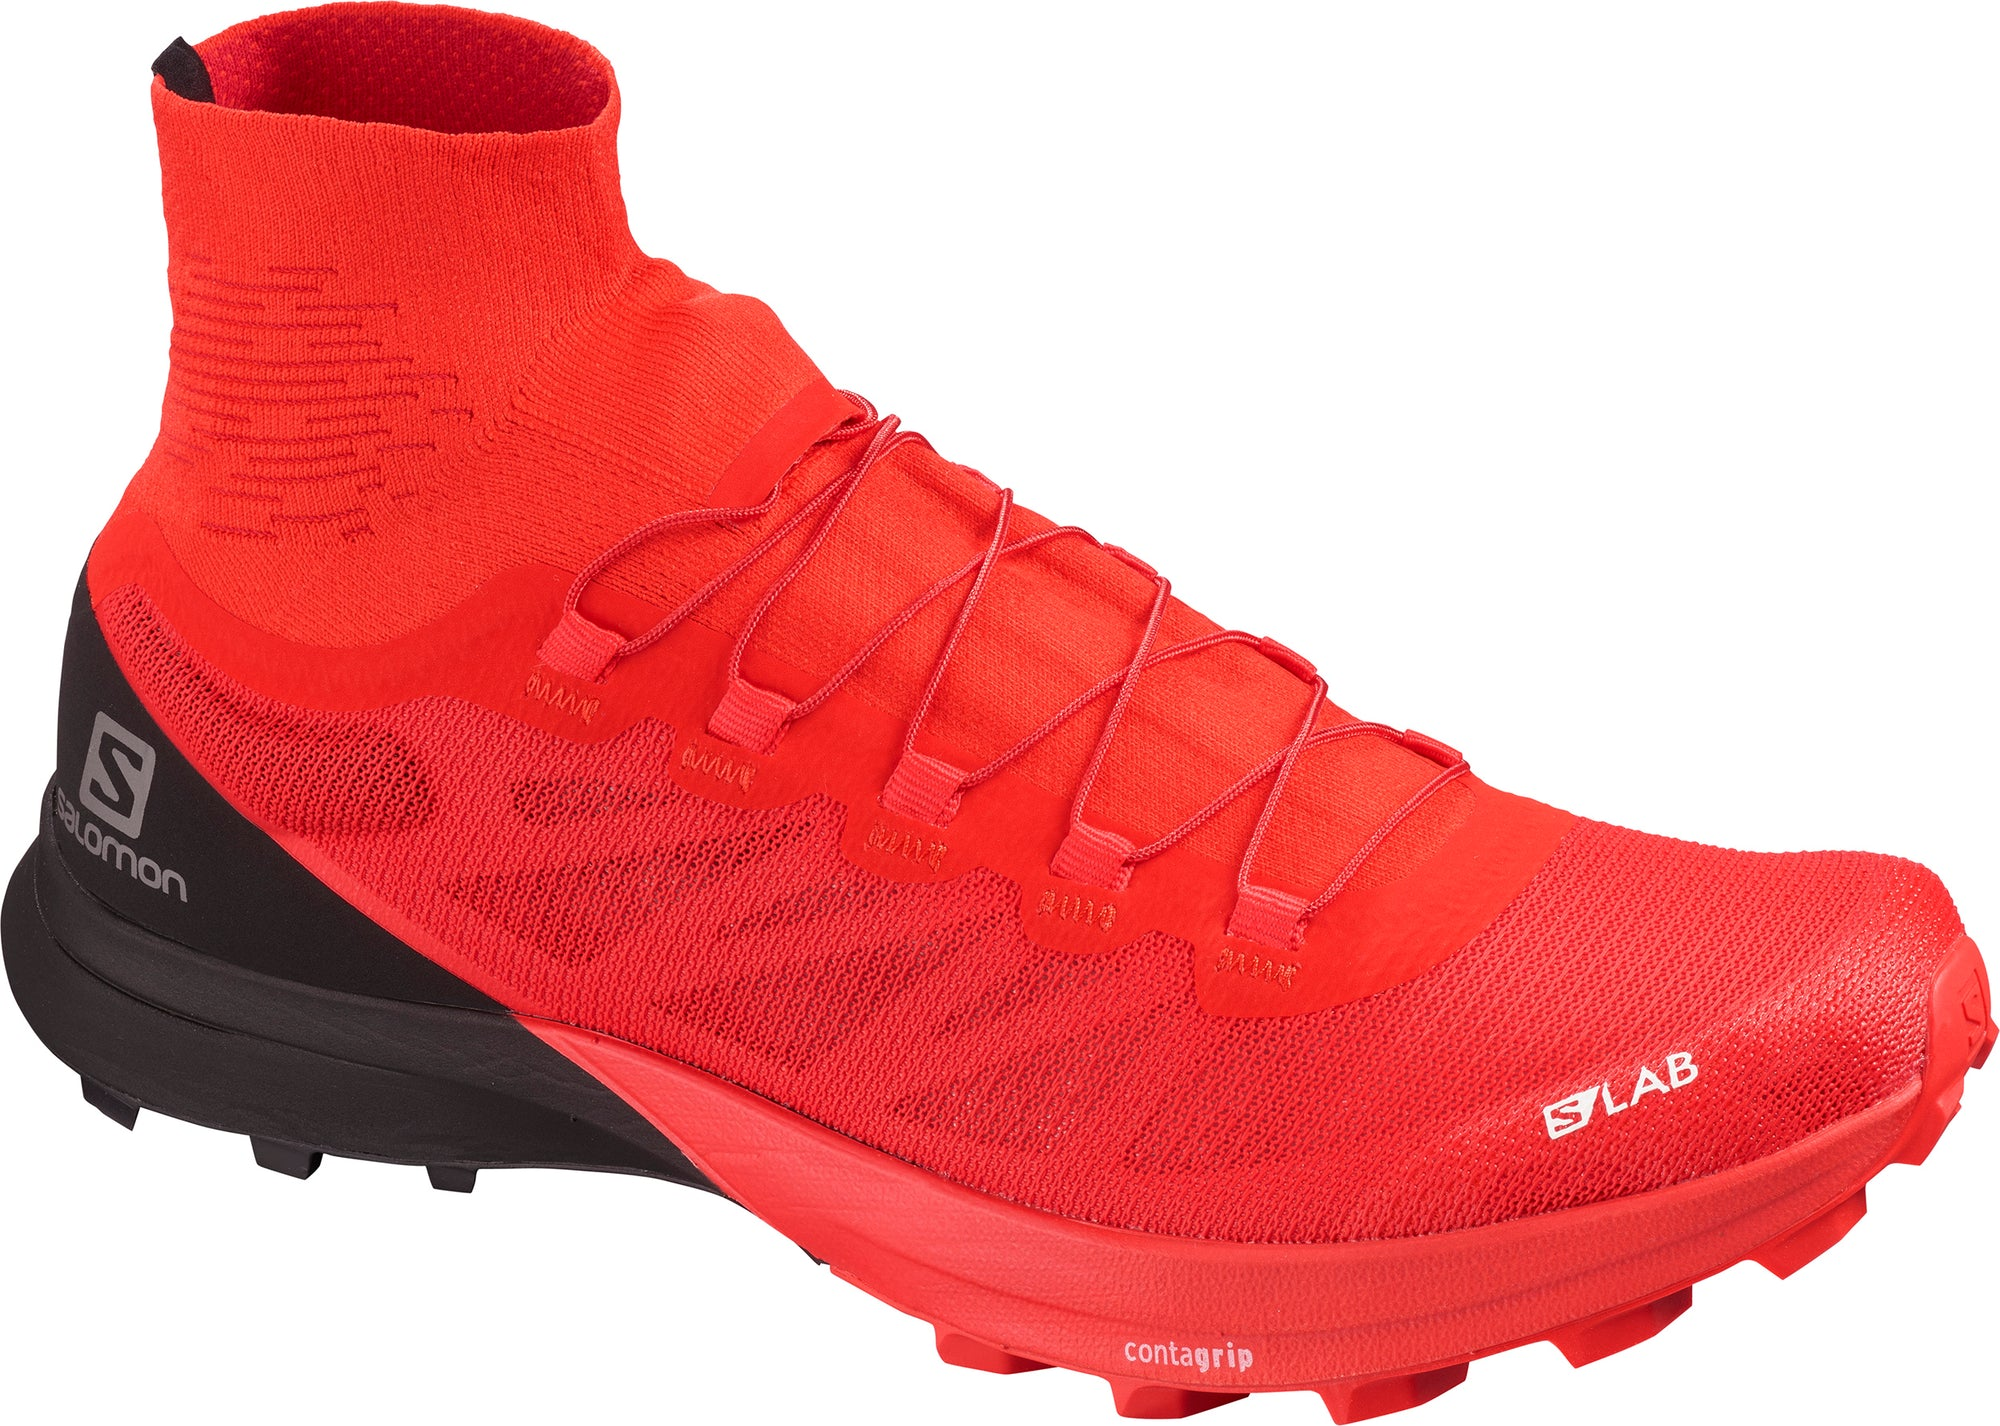 Salomon S/Lab Sense 8 SG (Soft Ground) Shoes